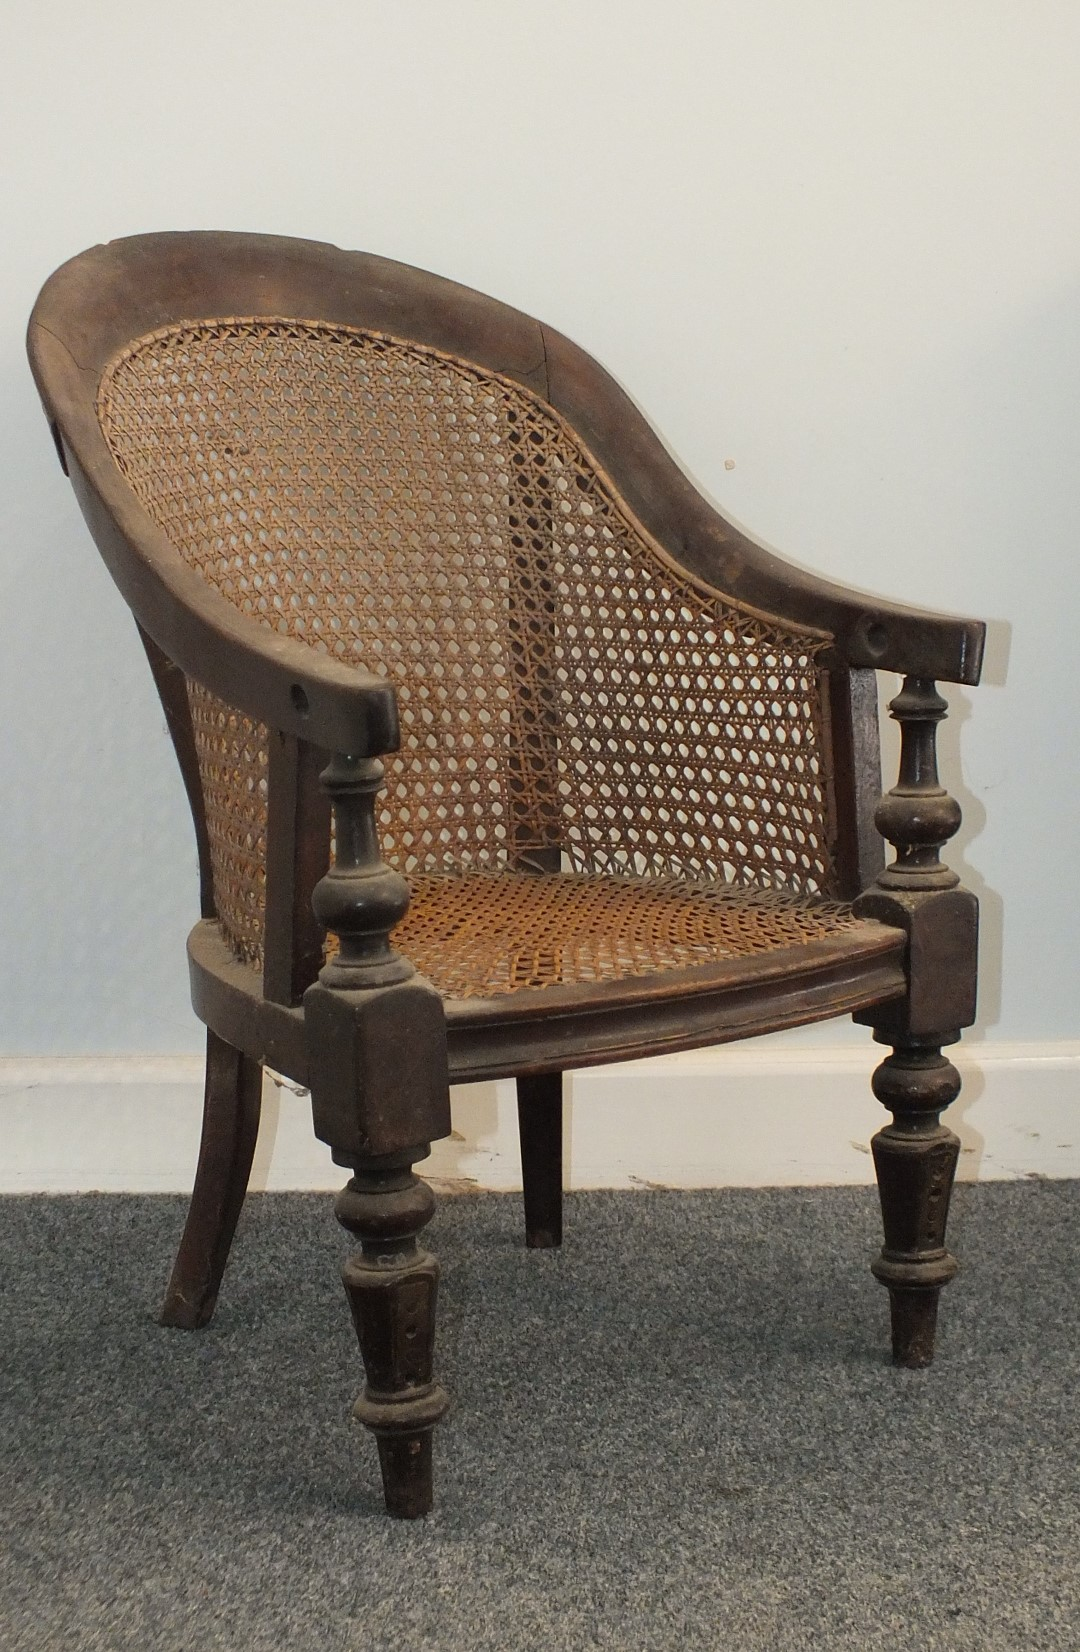 Lot 33 - A Victorian child's bergere chair on turned legs (metal strengthening bracket), a basket planter